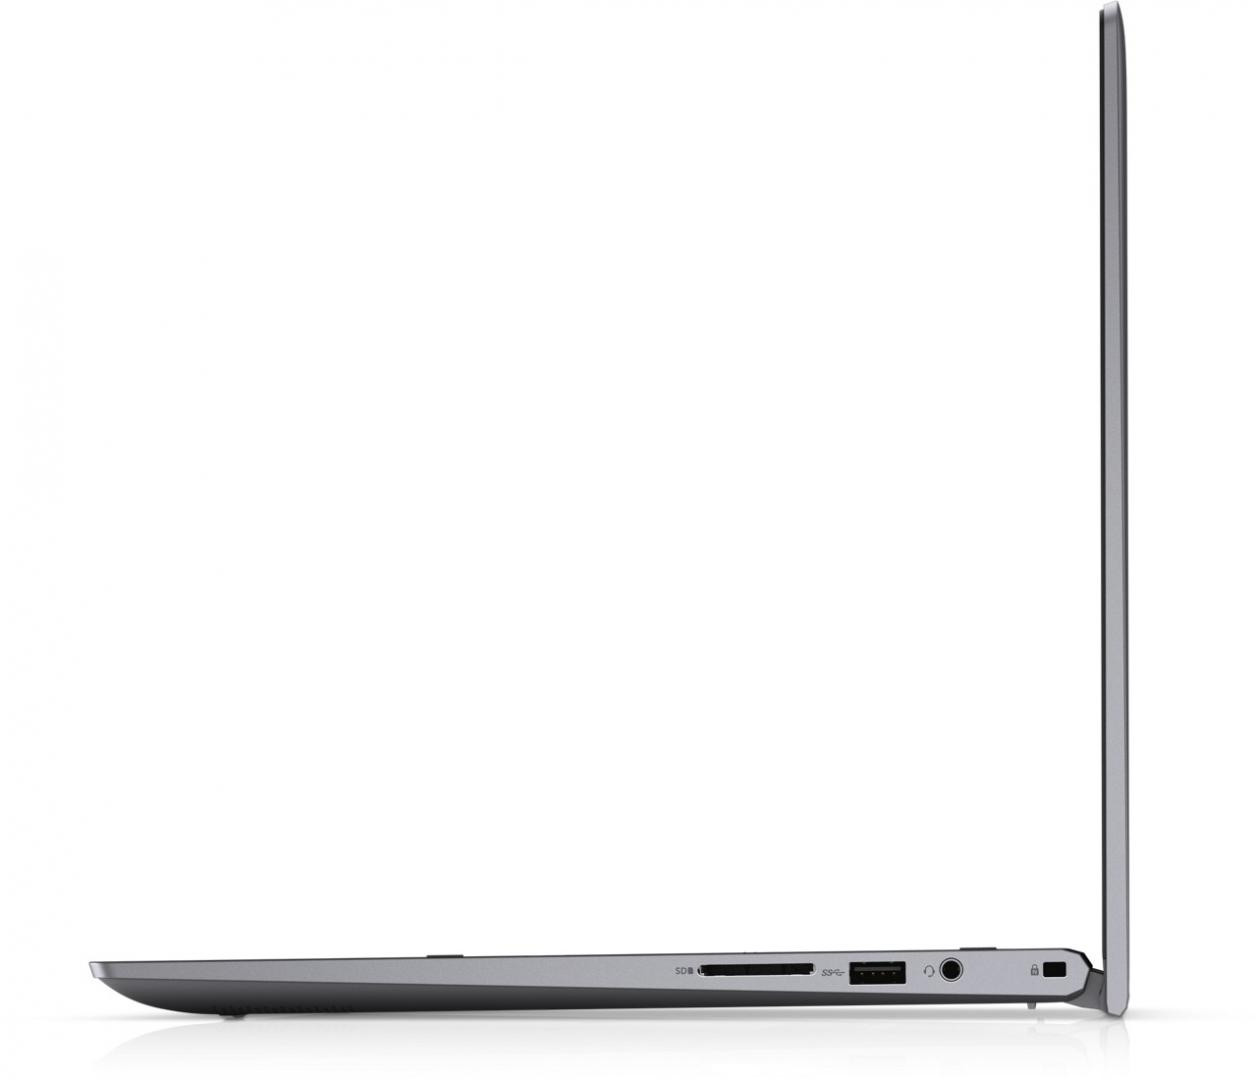 """Laptop Dell Inspiron 5406 2in1, 14.0"""" FHD, Touch, i5-1135G7, 8GB, 512GB SSD, Intel Iris Xe Graphics, W10 Home - imaginea 6"""